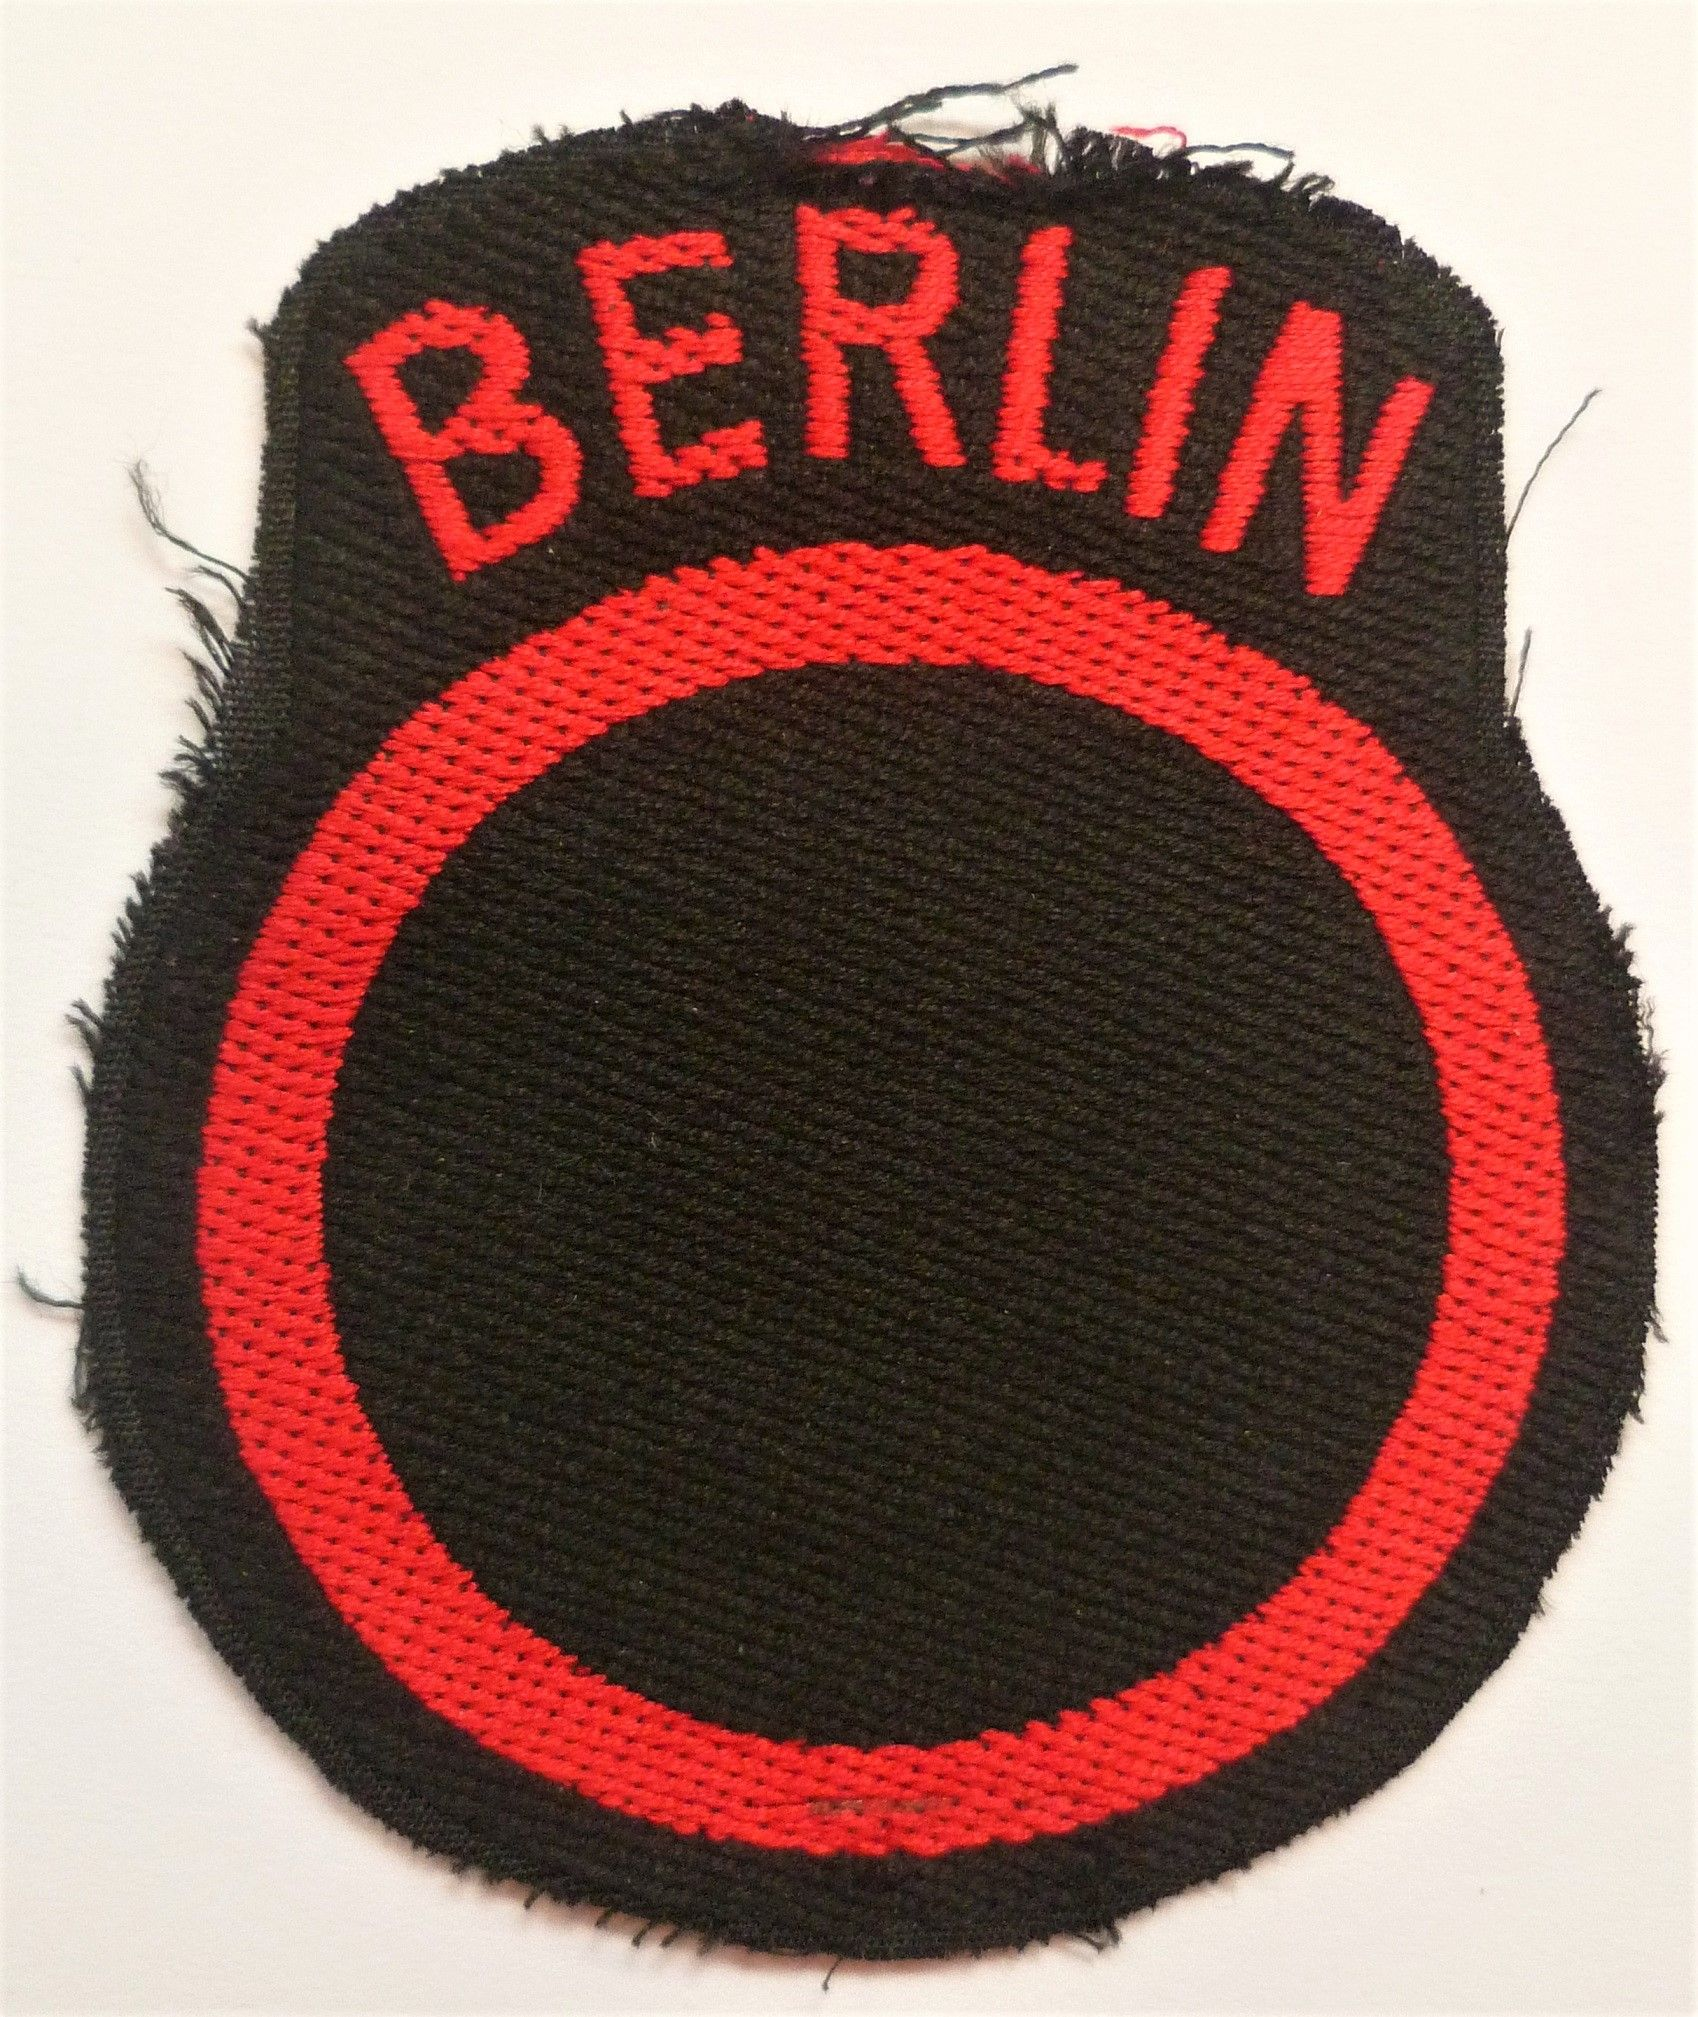 British Troops Berlin Occupation Army Cloth Formation Sign